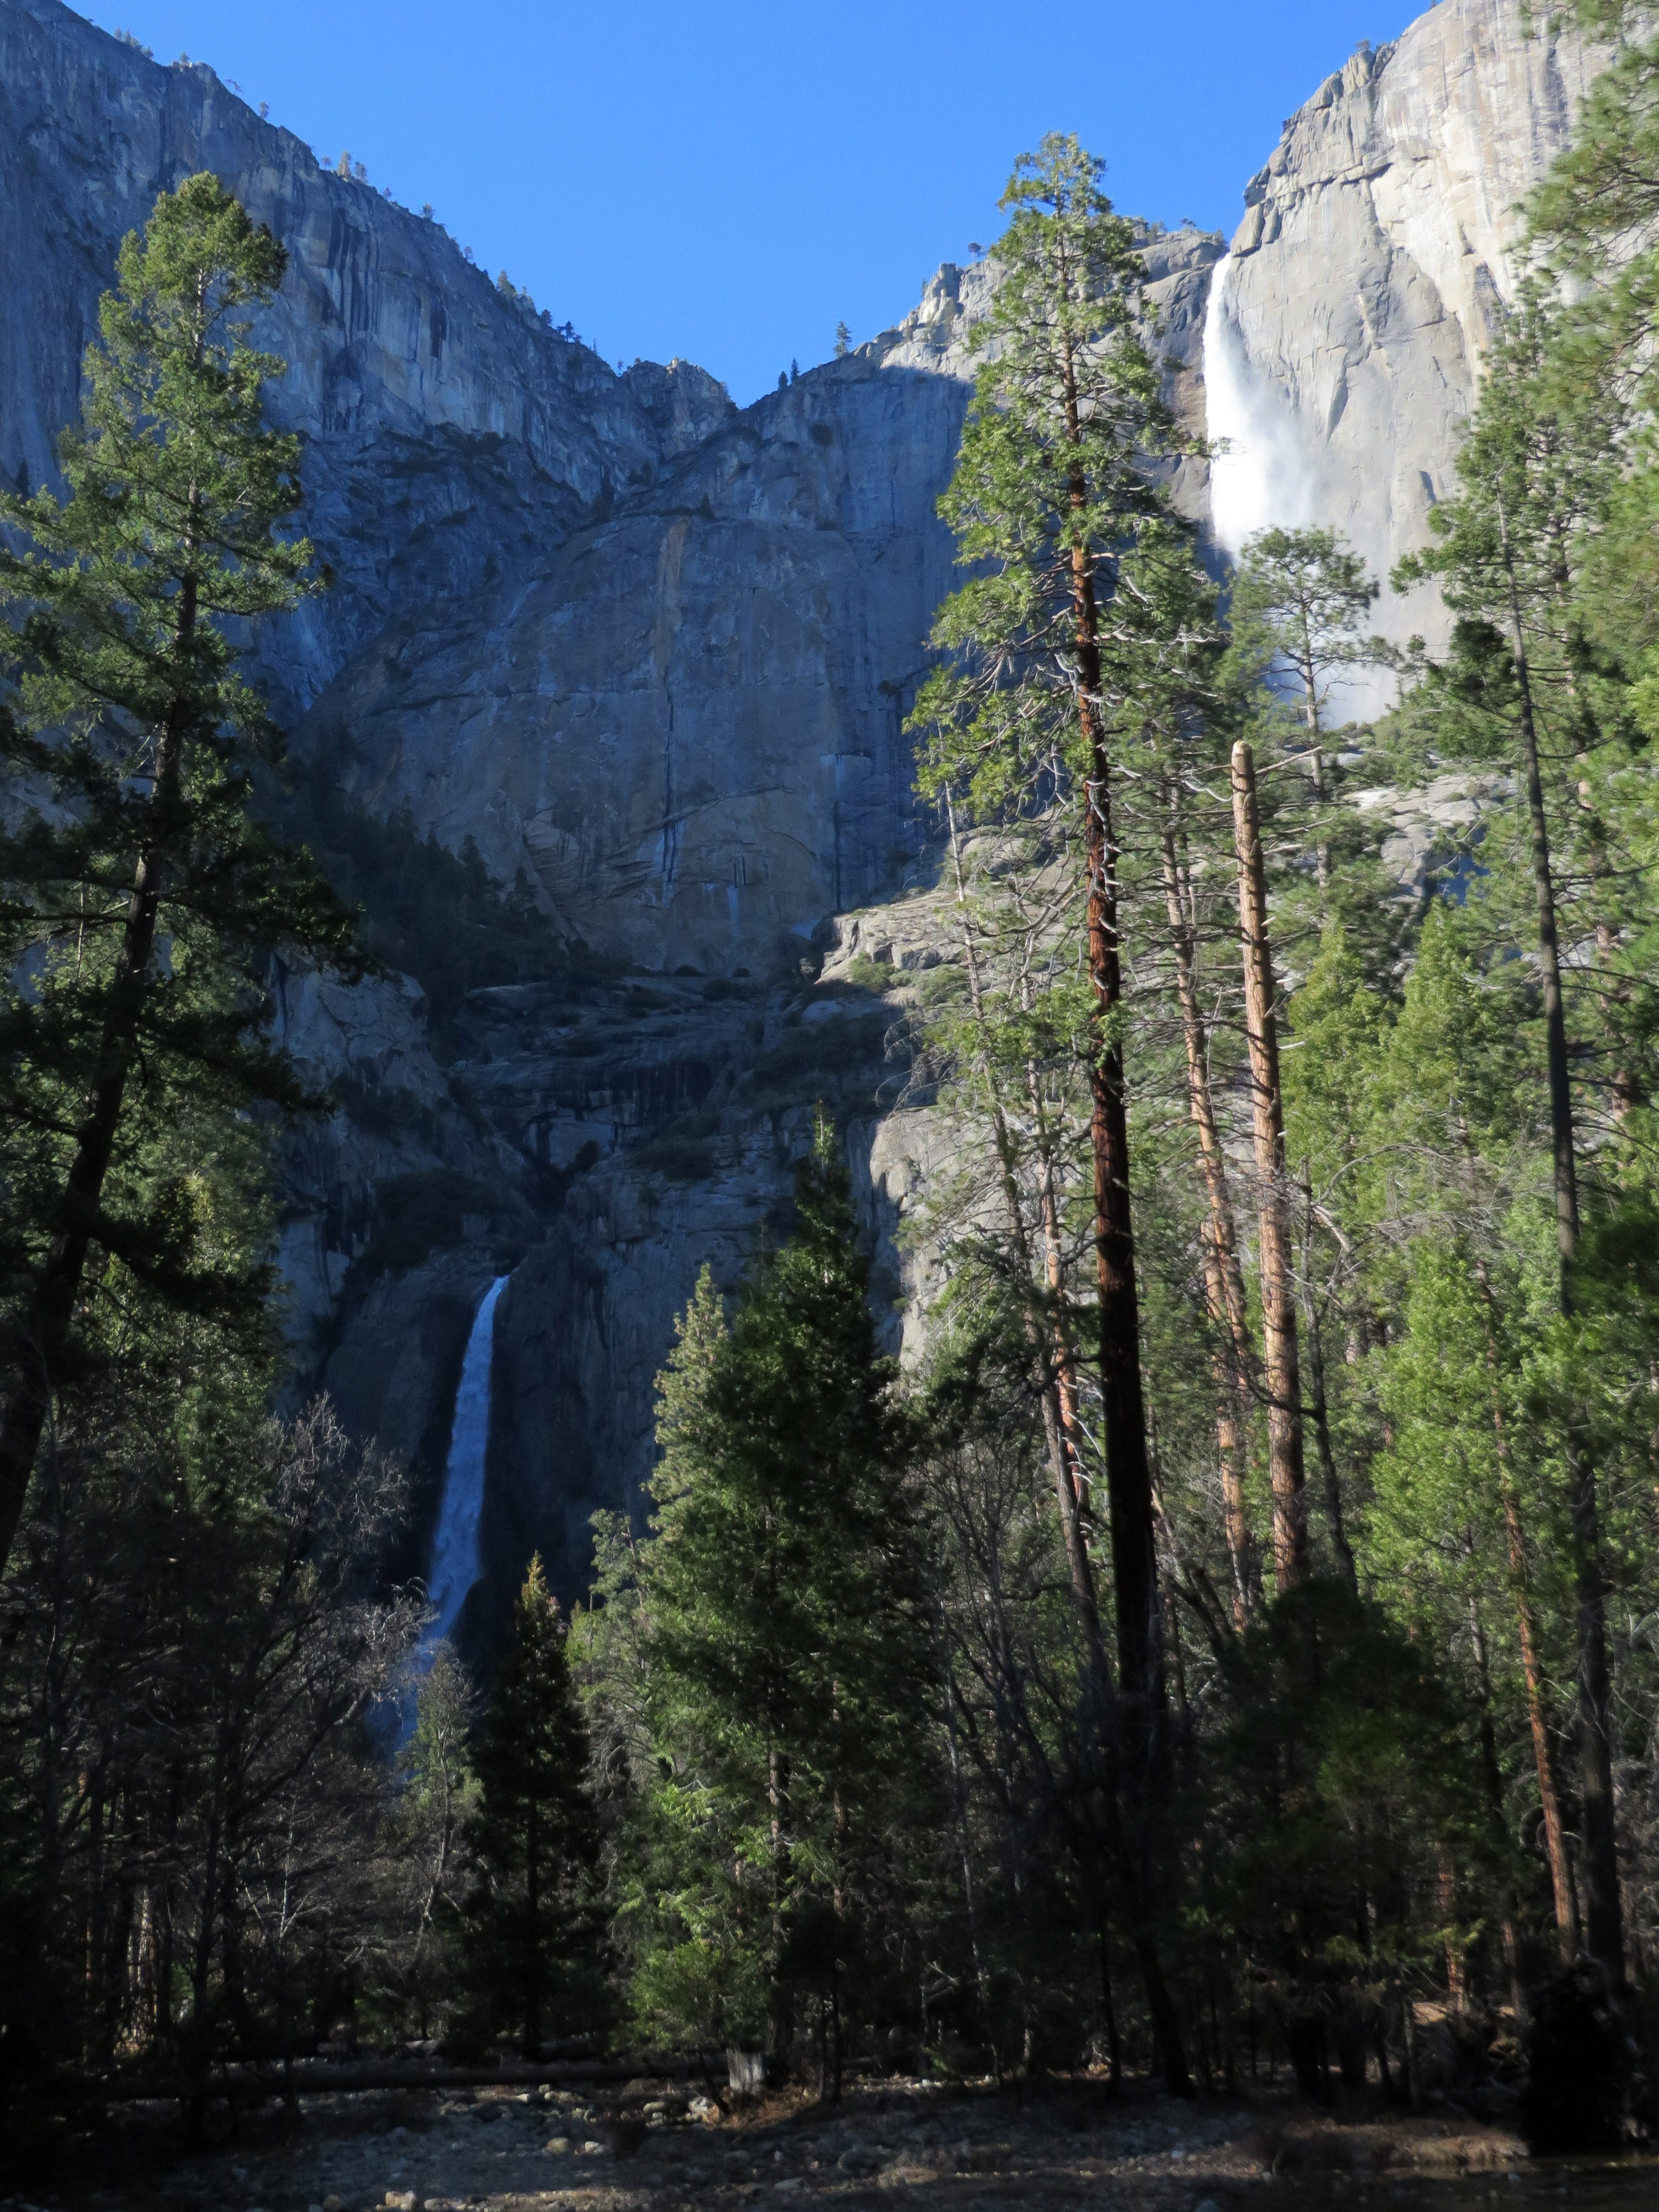 Together comprising the tallest waterfall in North America, the twin curtains of Upper and Lower Yosemite Falls spill the waters of Yosemite Creek over the lip of the canyon's north rim, from whence they plunge 2,425 feet into Yosemite Valley. (photo by D. Speredelozzi)